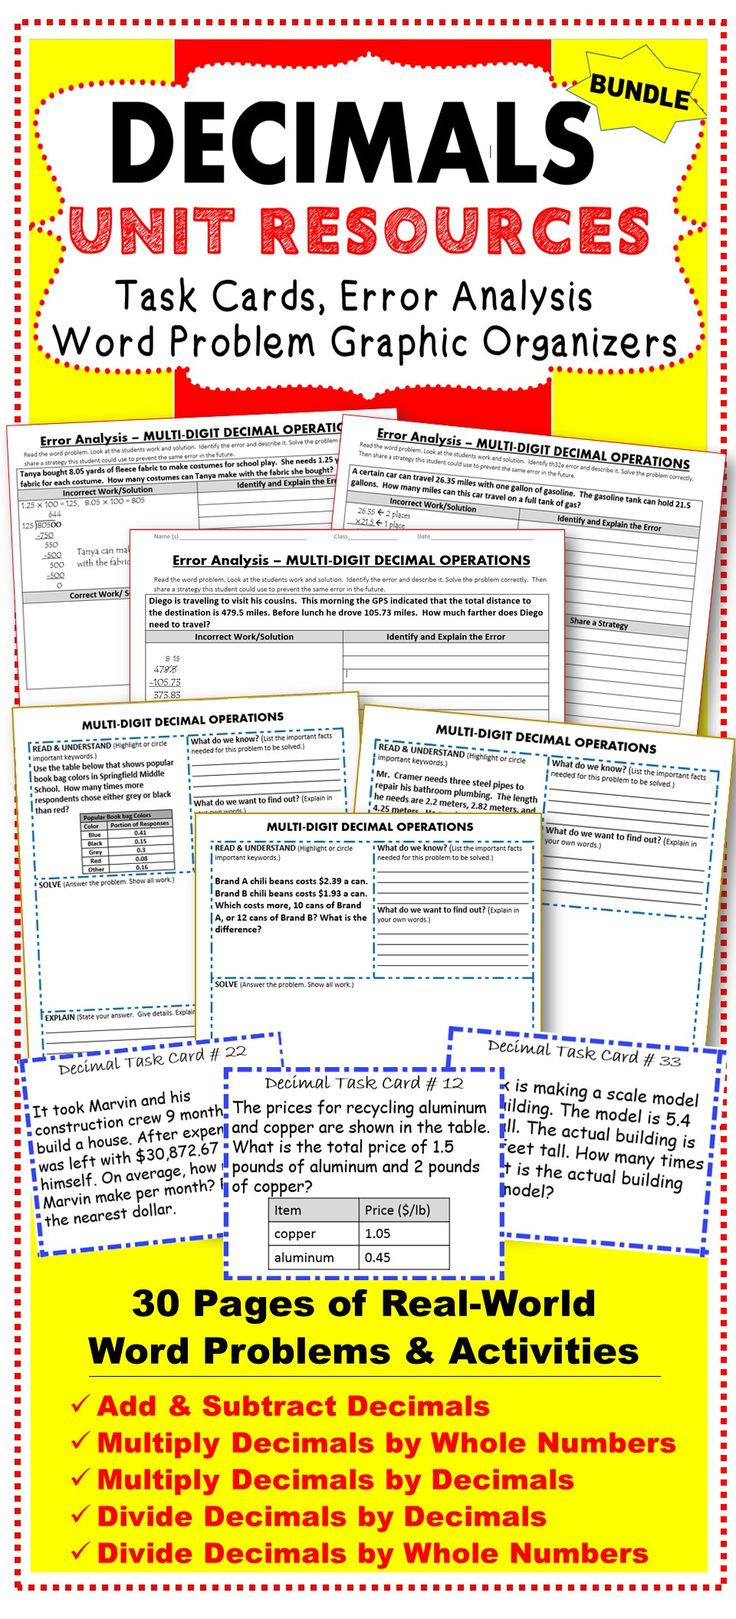 This BUNDLE includes 40 task cards, 10 error analysis activities and 10 problem solving graphic organizers (a total of 60 real-world word problems). The resources in this bundle are perfect for warm-ups, cooperative learning, spiral review, math centers, assessment prep and homework.   Topics included: ✔ Add & Subtract Decimals ✔ Multiply Decimals by Whole Numbers ✔ Multiply Decimals by Decimals ✔ Divide Decimals by Decimals ✔ Divide Decimals by Whole Numbers: